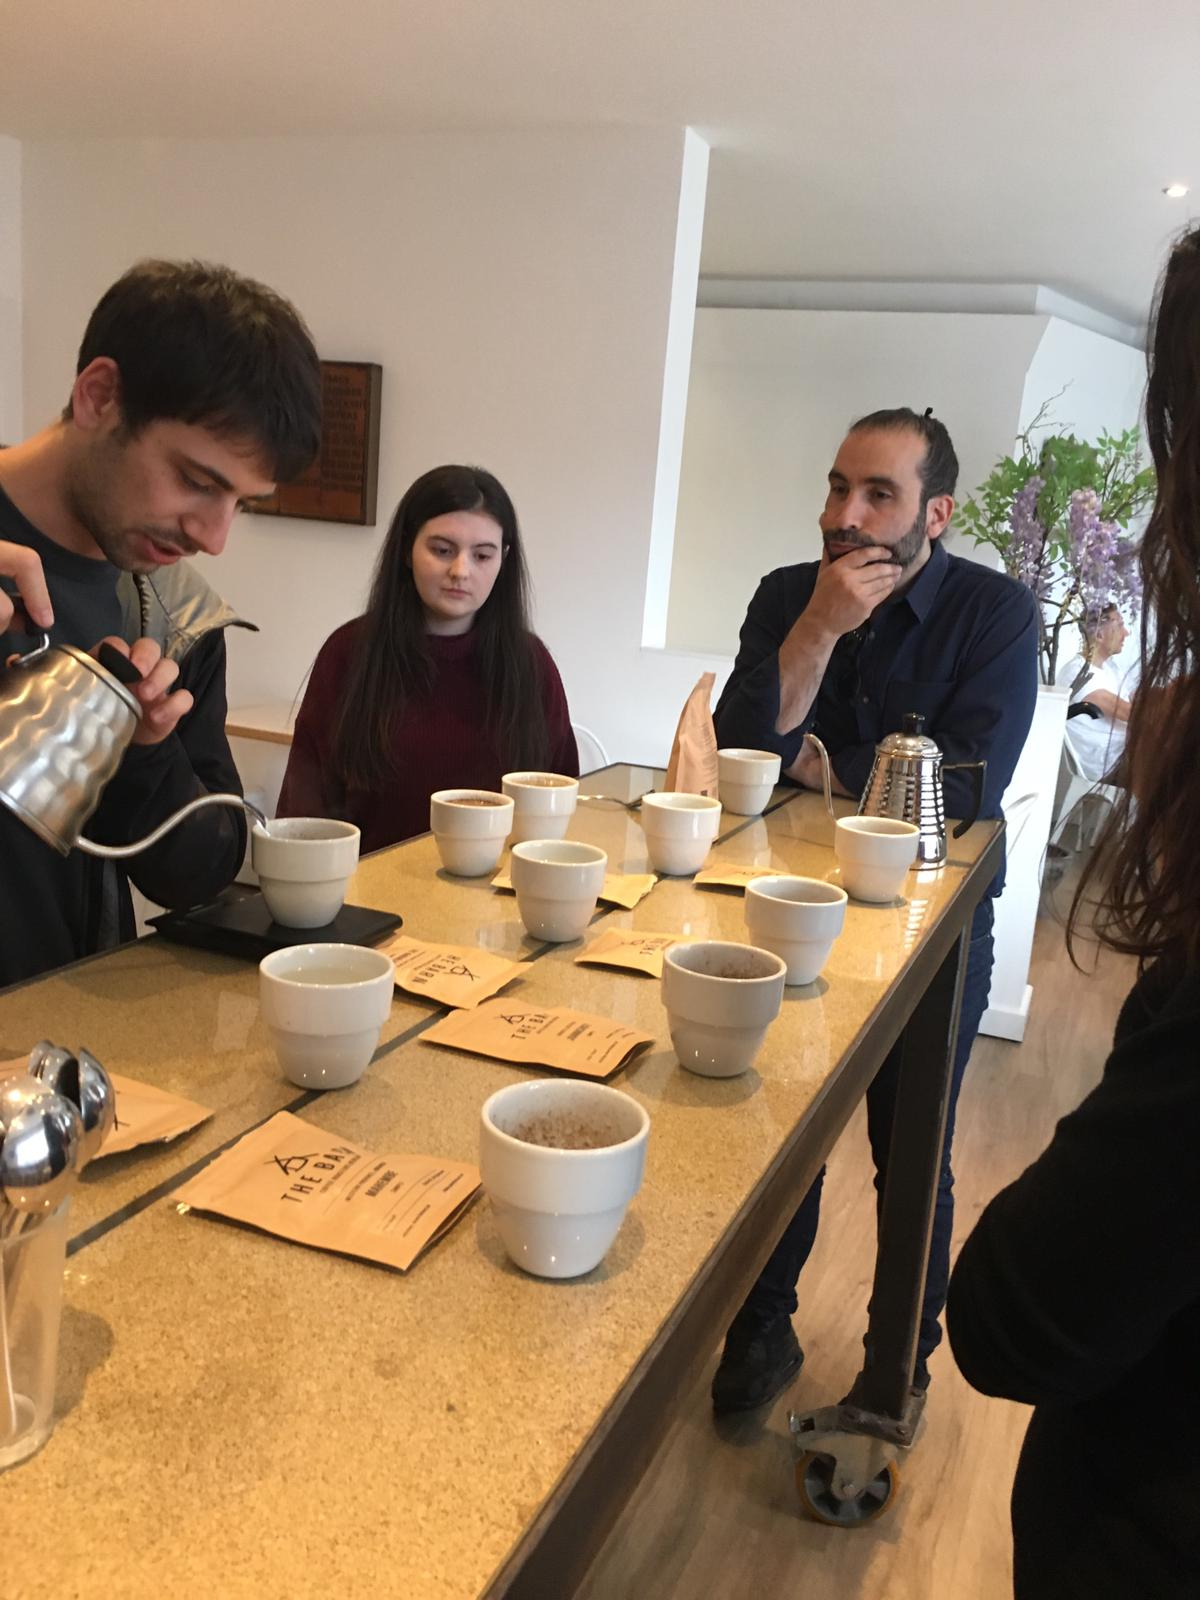 barn cupping august 2019 photo 2.jpg